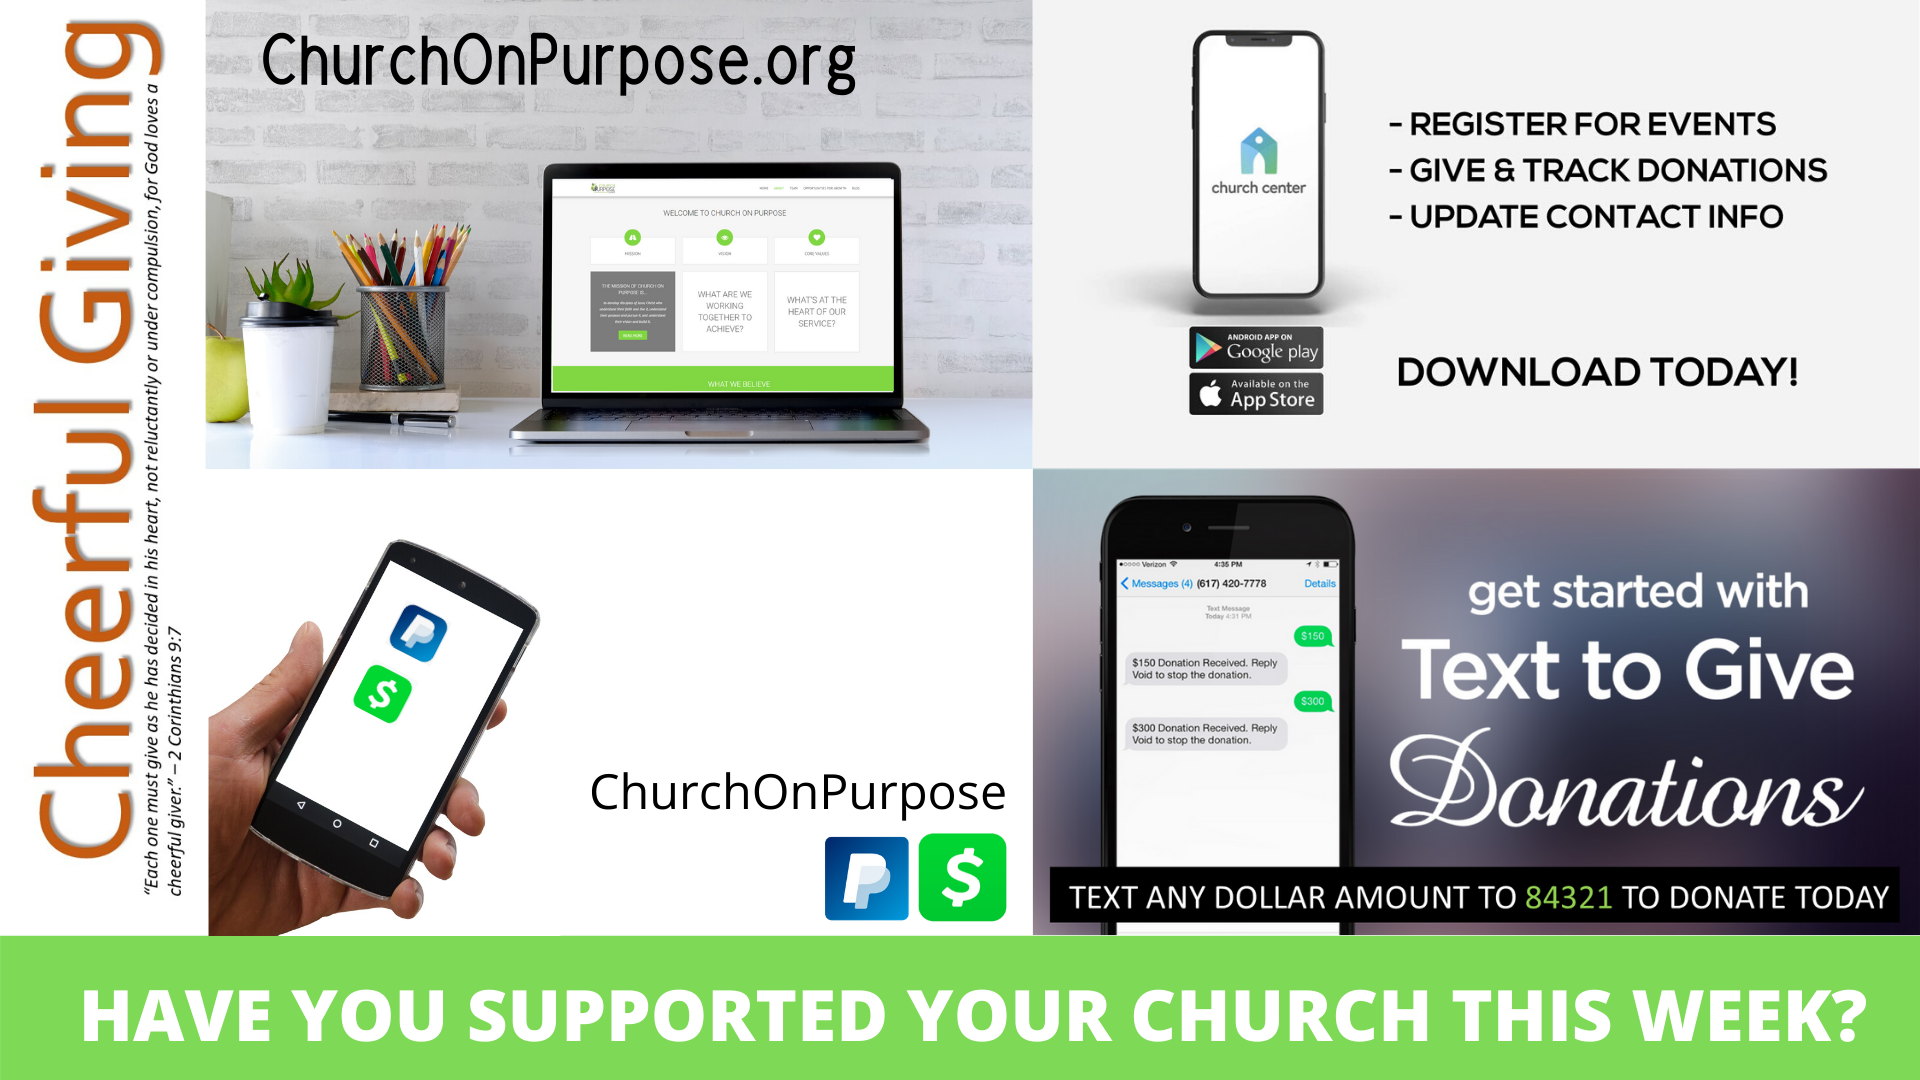 HAVE YOU SUPPORTED YOUR CHURCH THIS WEEK_